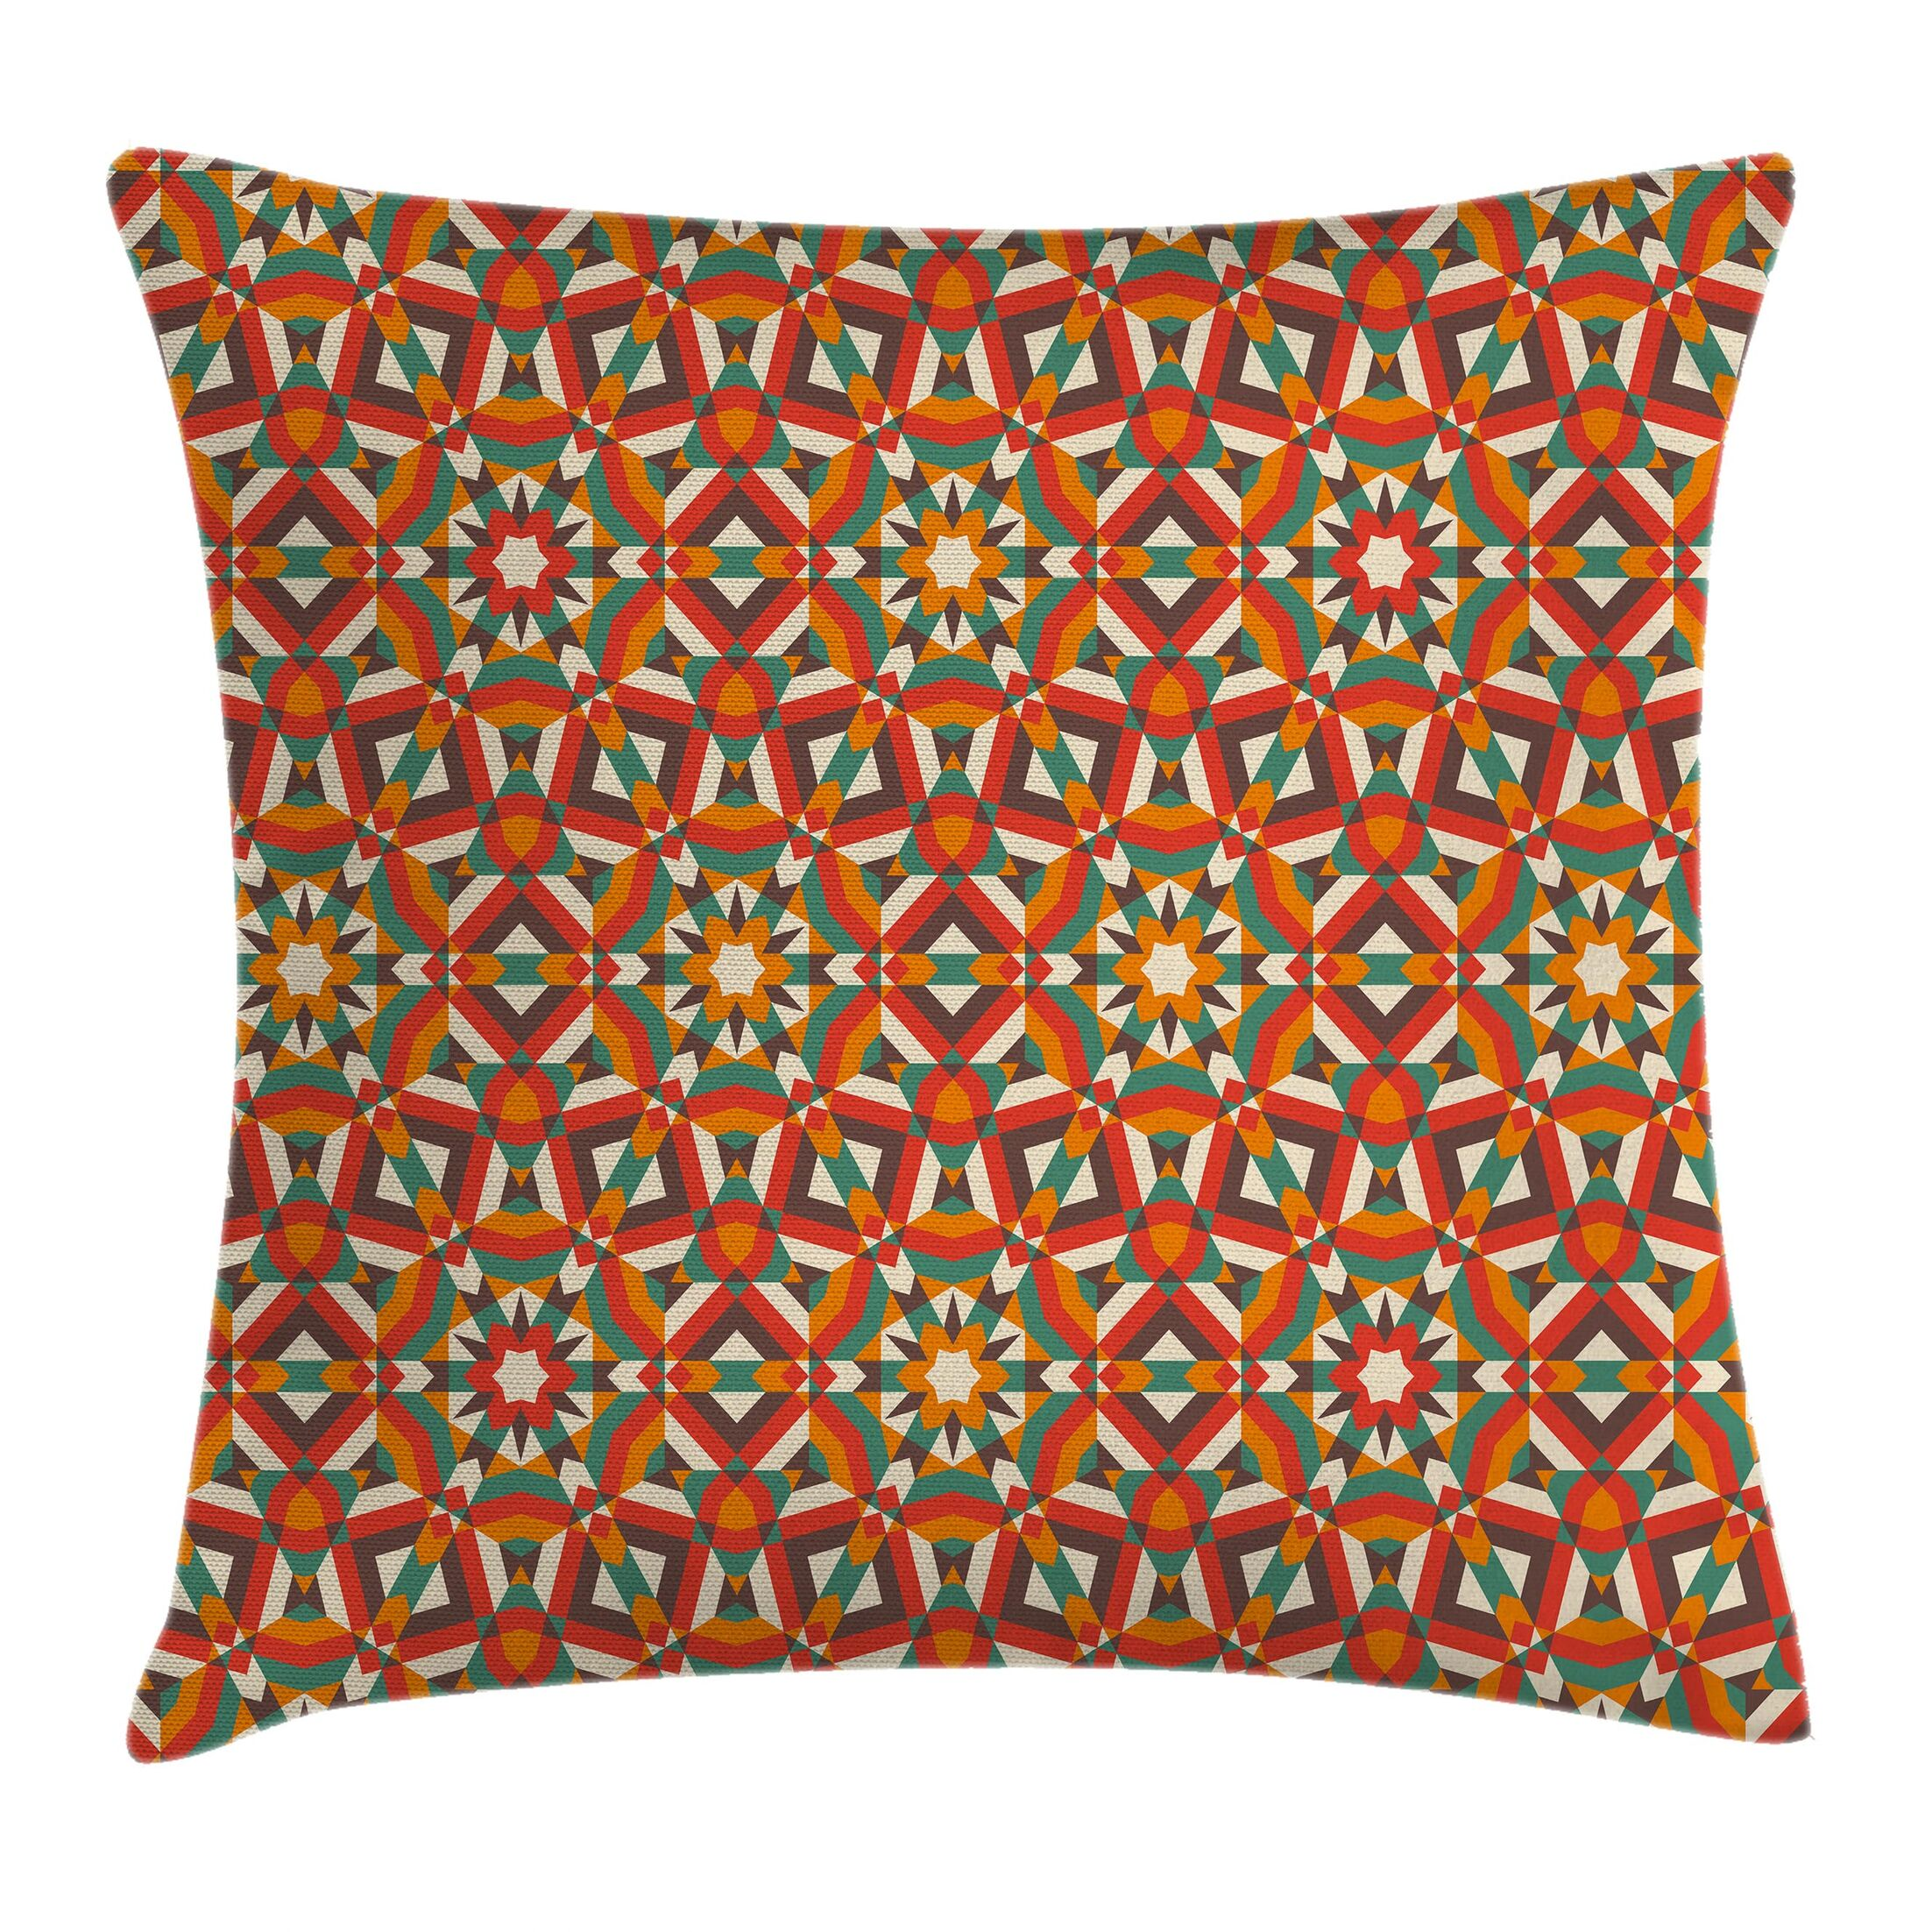 Modern Geometric Graphic Print Pillow Cover with Zipper Size: 24